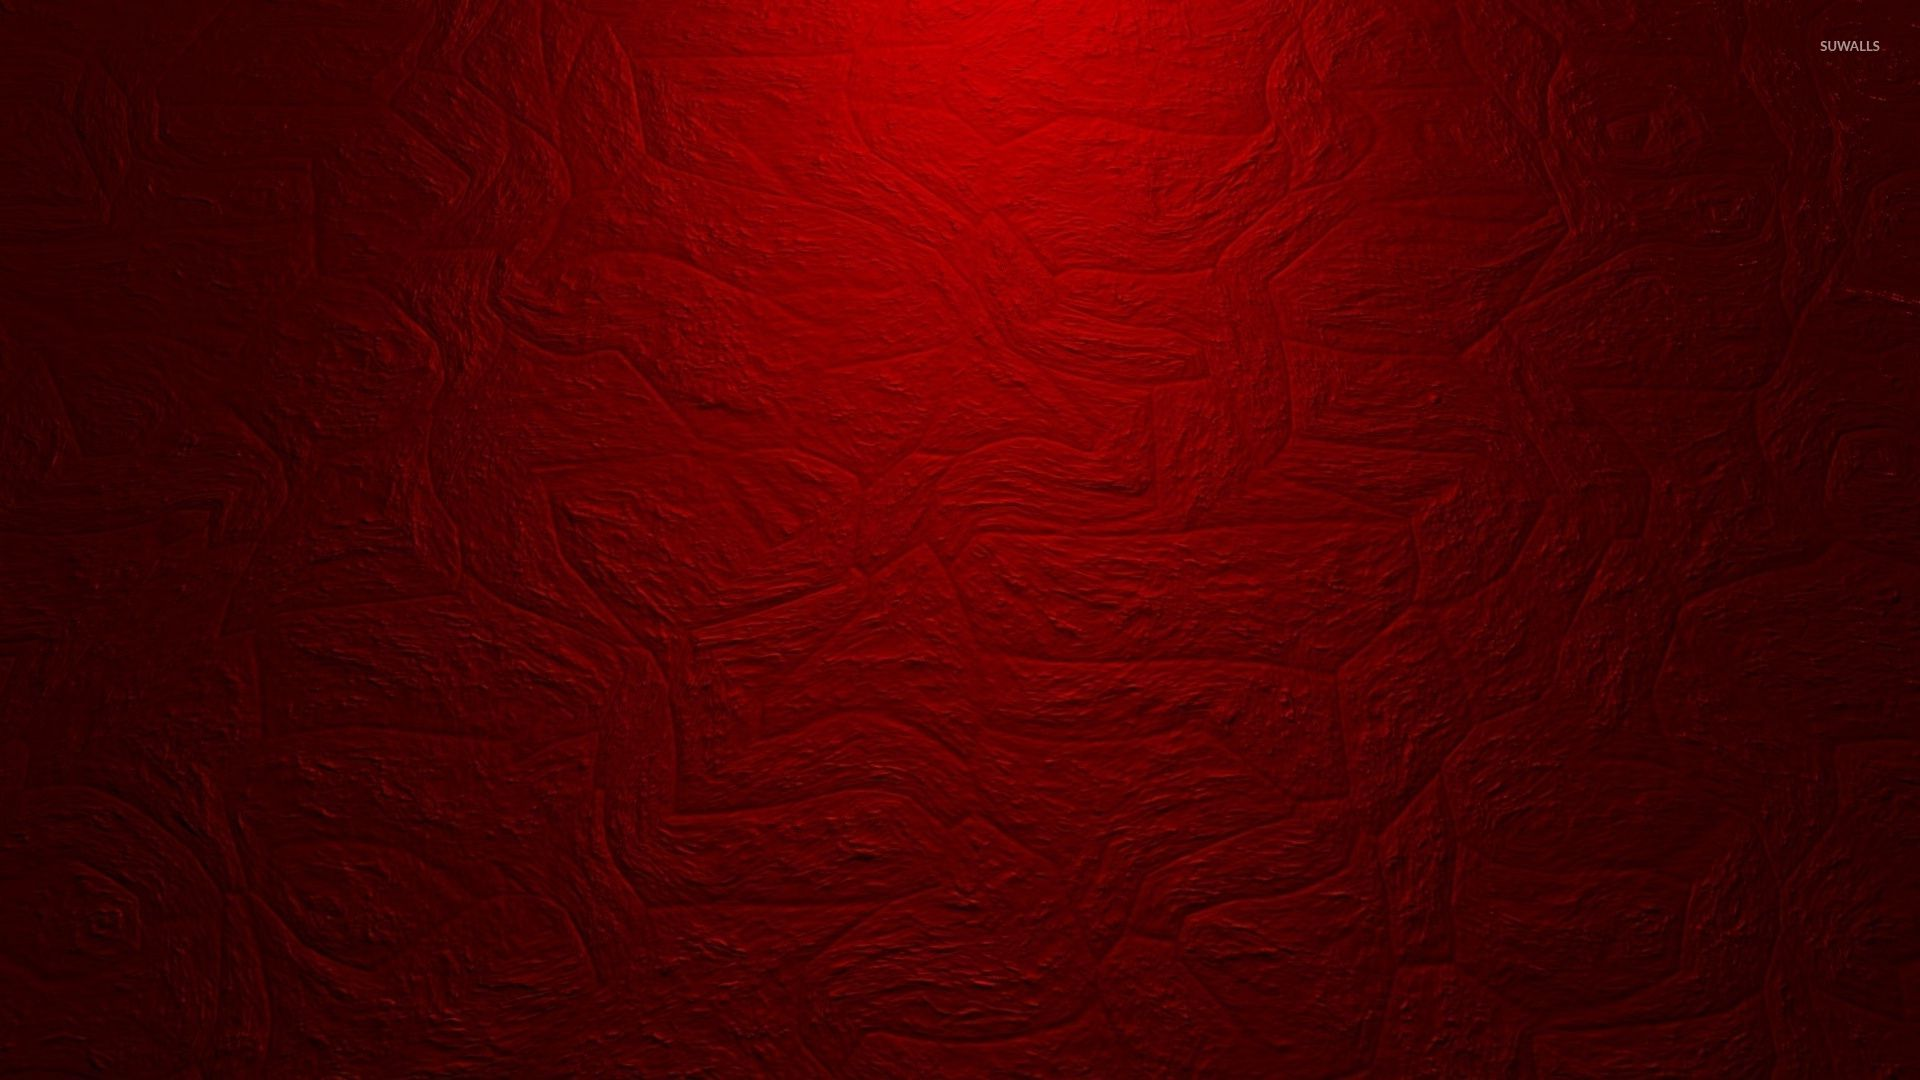 red textured background hd - photo #27